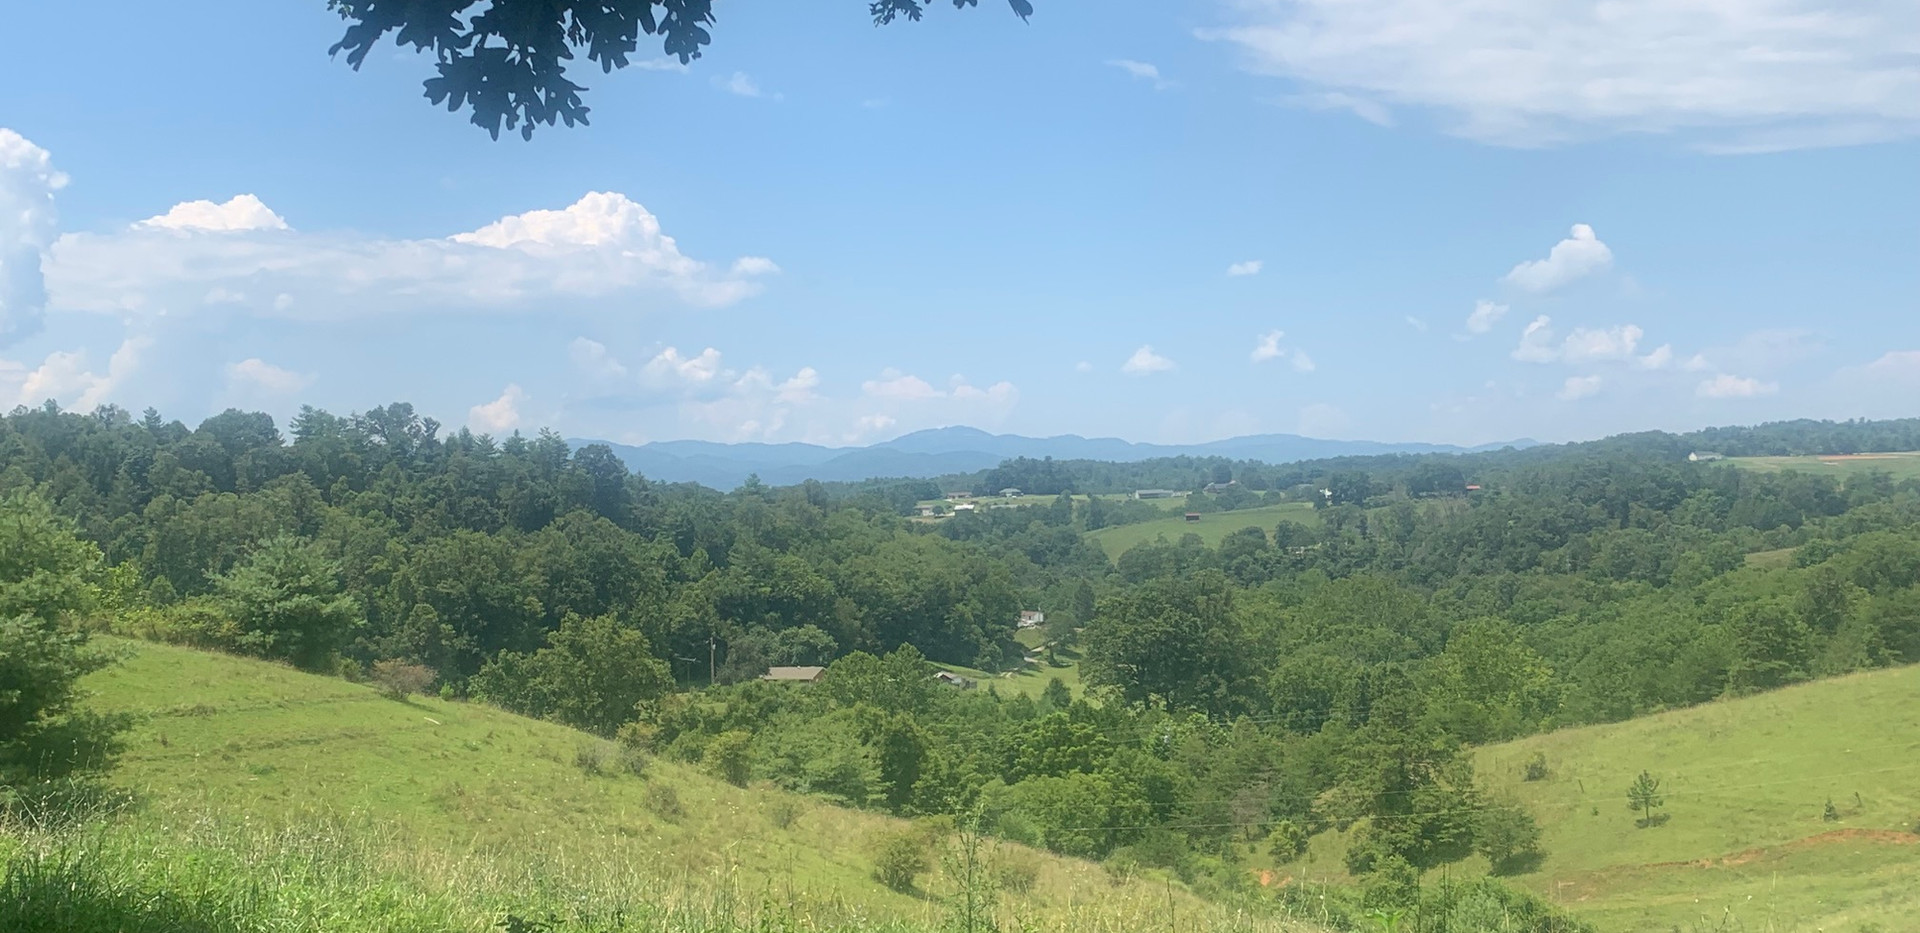 Mountain Scenic View by the Swing